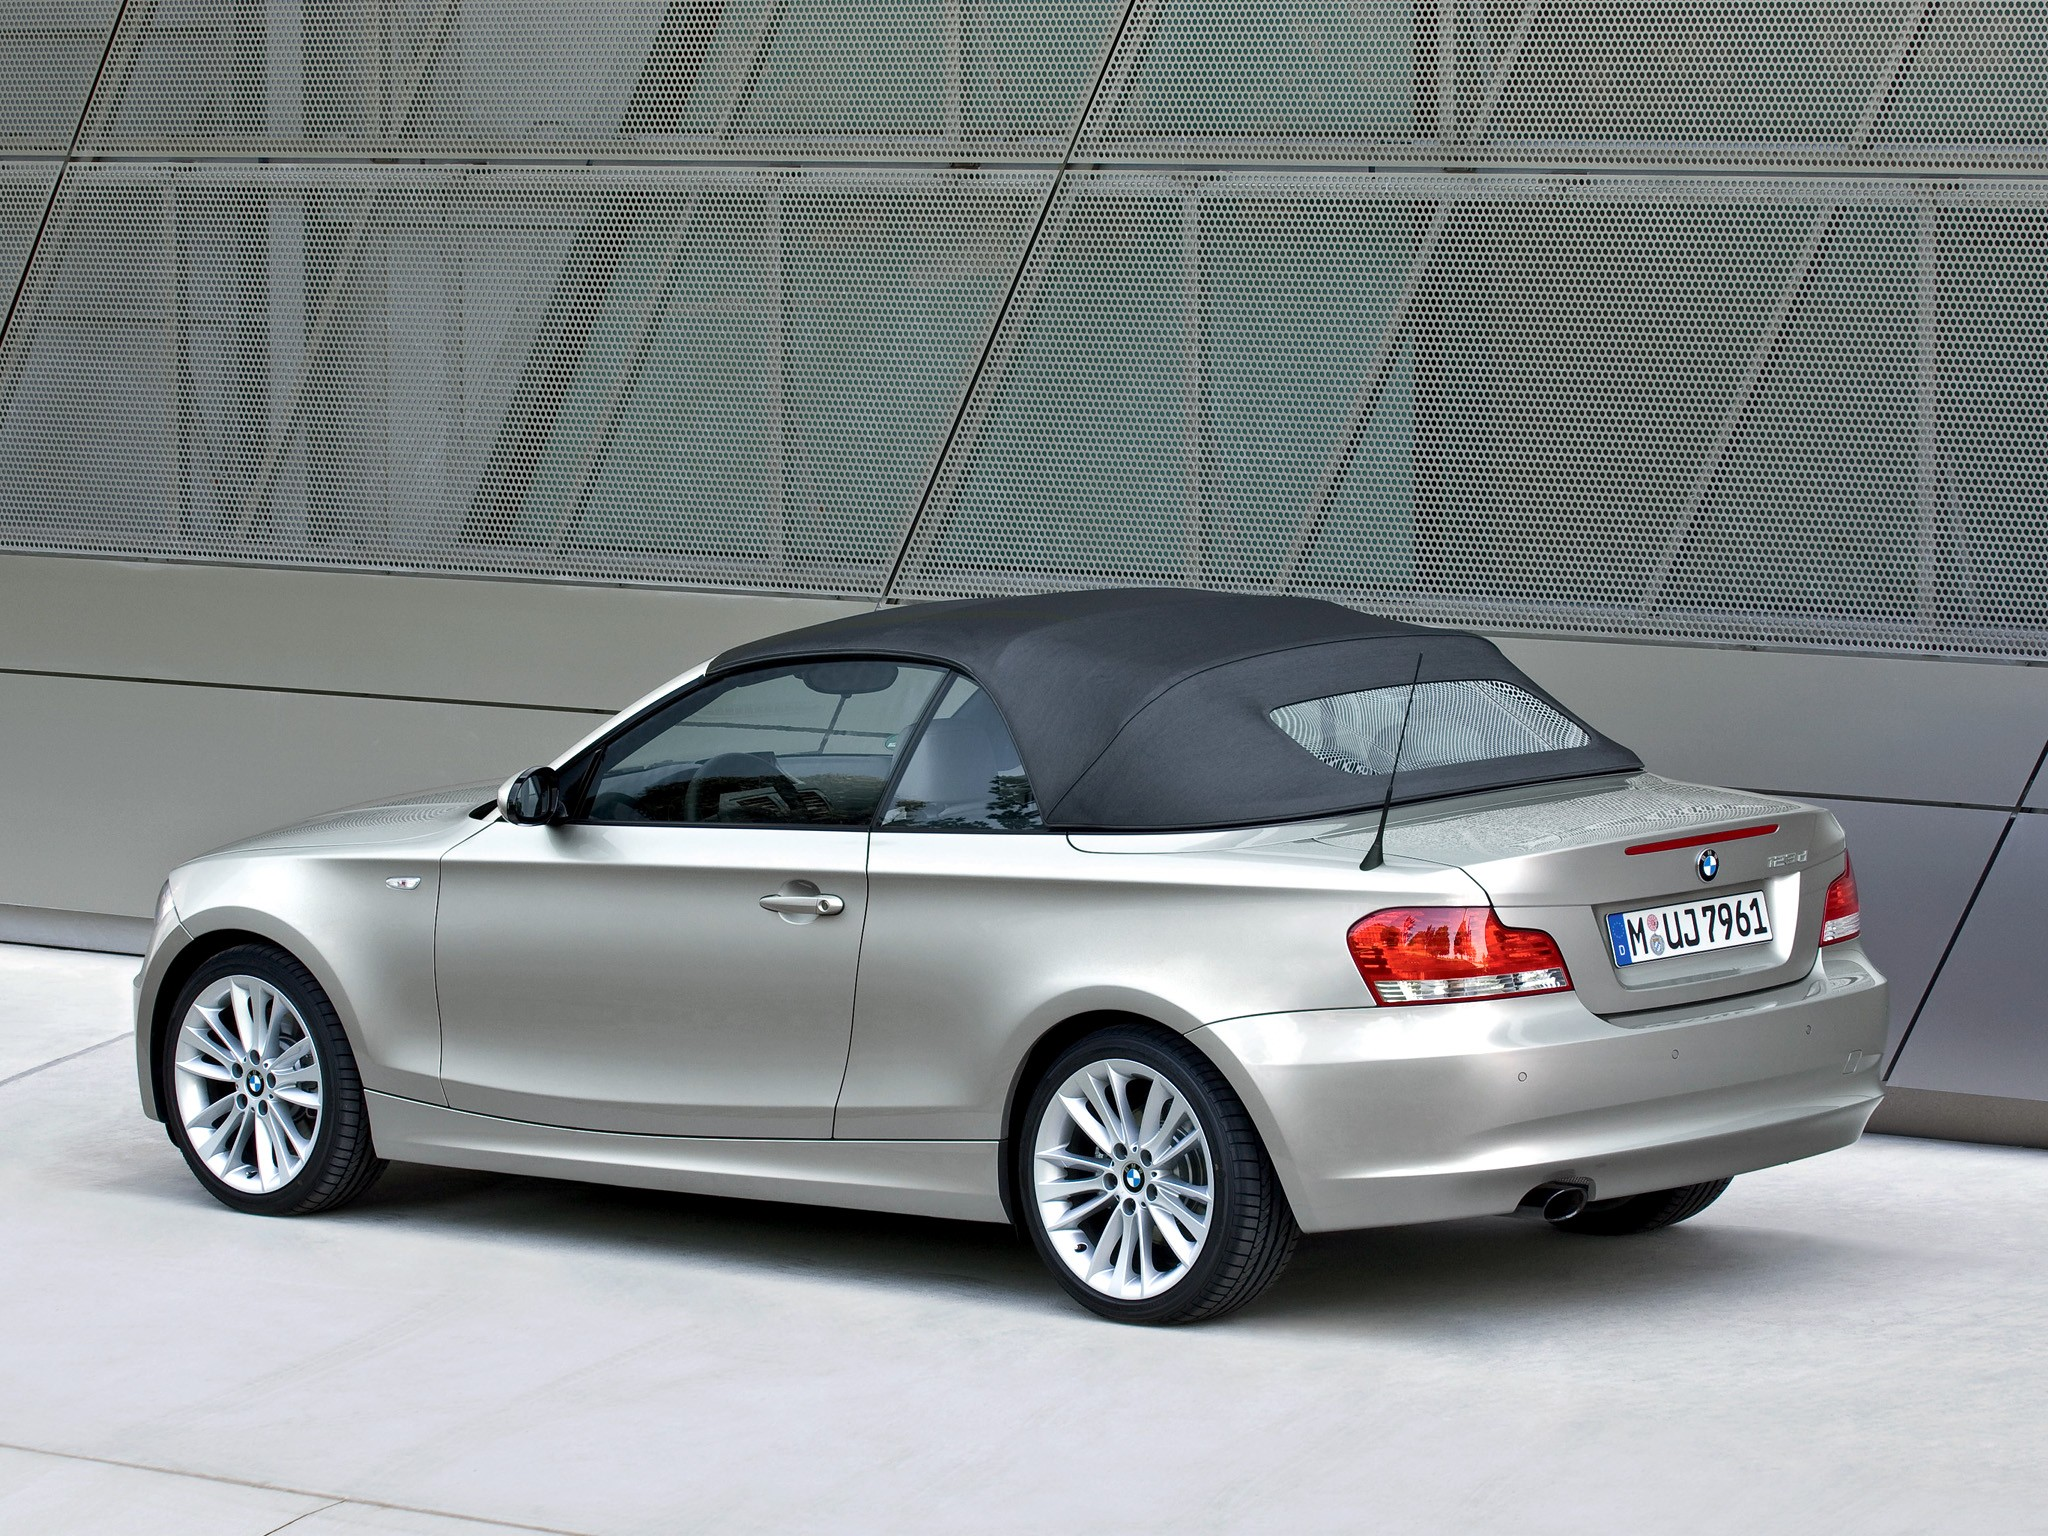 2010 BMW 1 Series Cabrio photo - 1